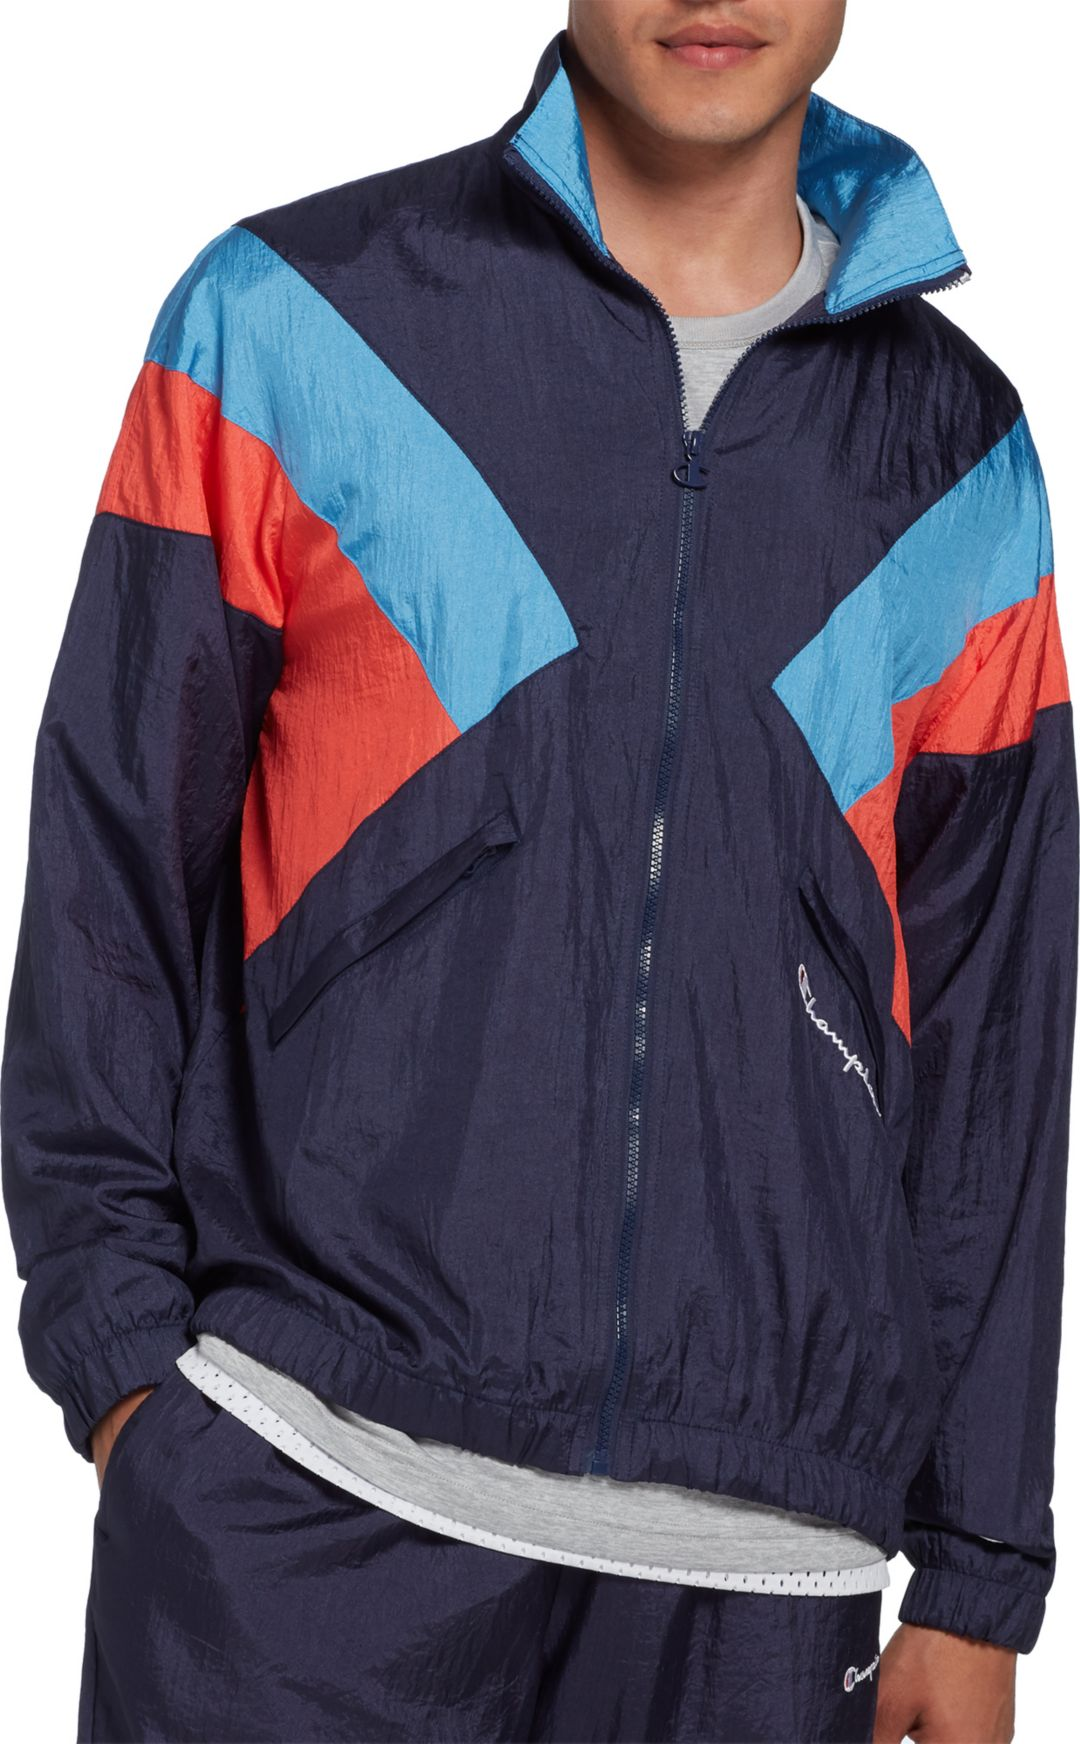 994ddd085 Champion Life Men's Nylon Warm Up Jacket | DICK'S Sporting Goods